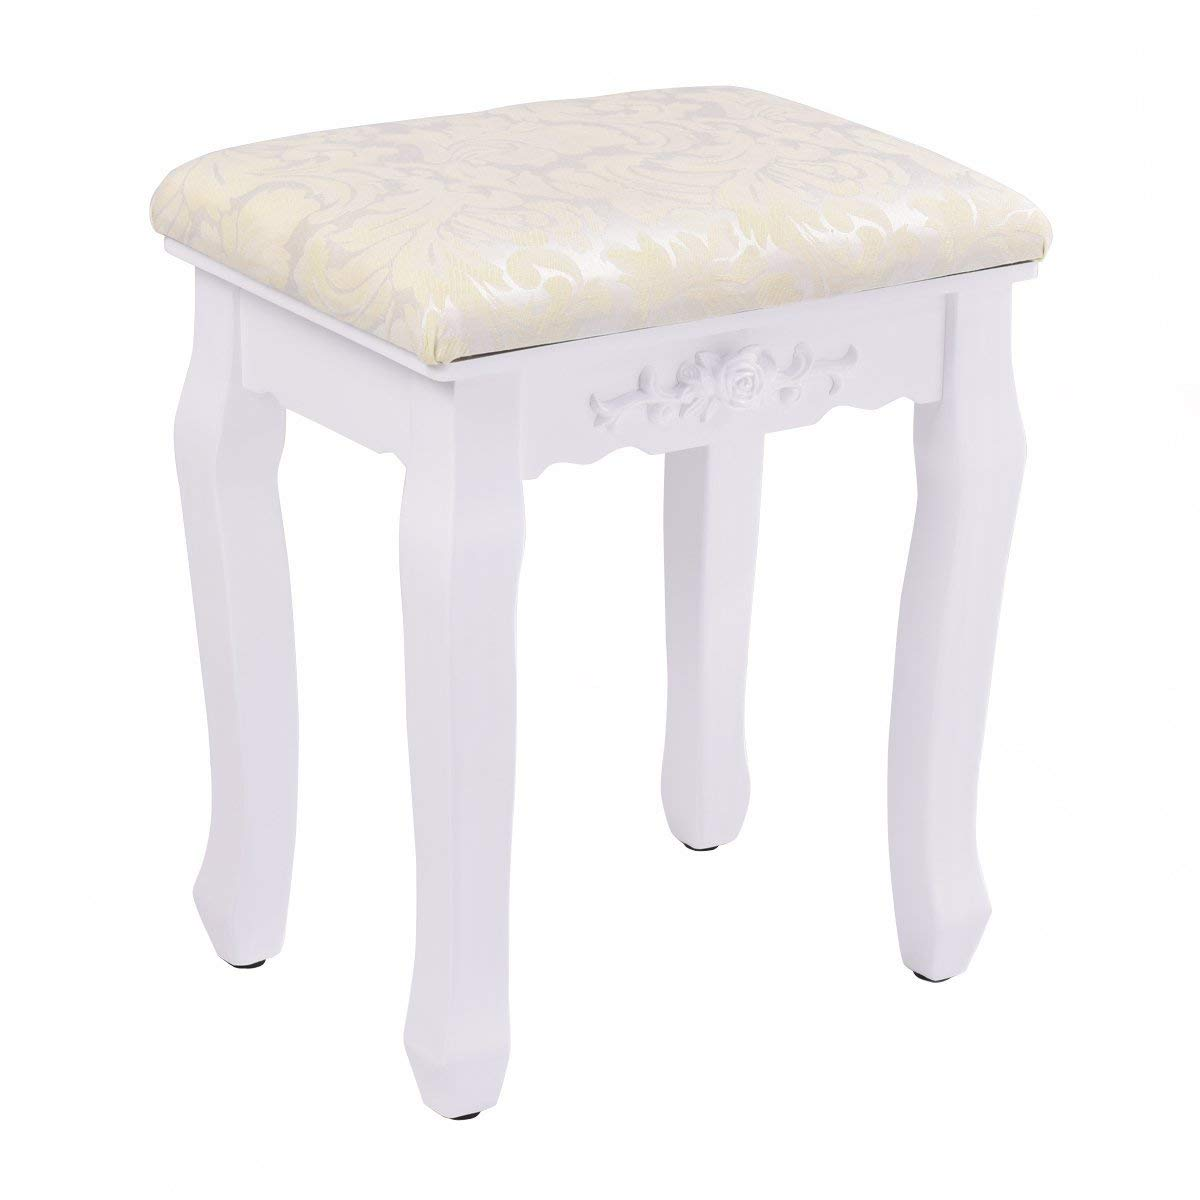 Casart Vanity Stool Makeup Bench Dressing Stools Retro Wave Foot Floor Pad for Scratch Solid Pine Wood Legs Thick Padded Cushioned Chair Piano Seat Bathroom Bedroom Large Vanity Benches (White)